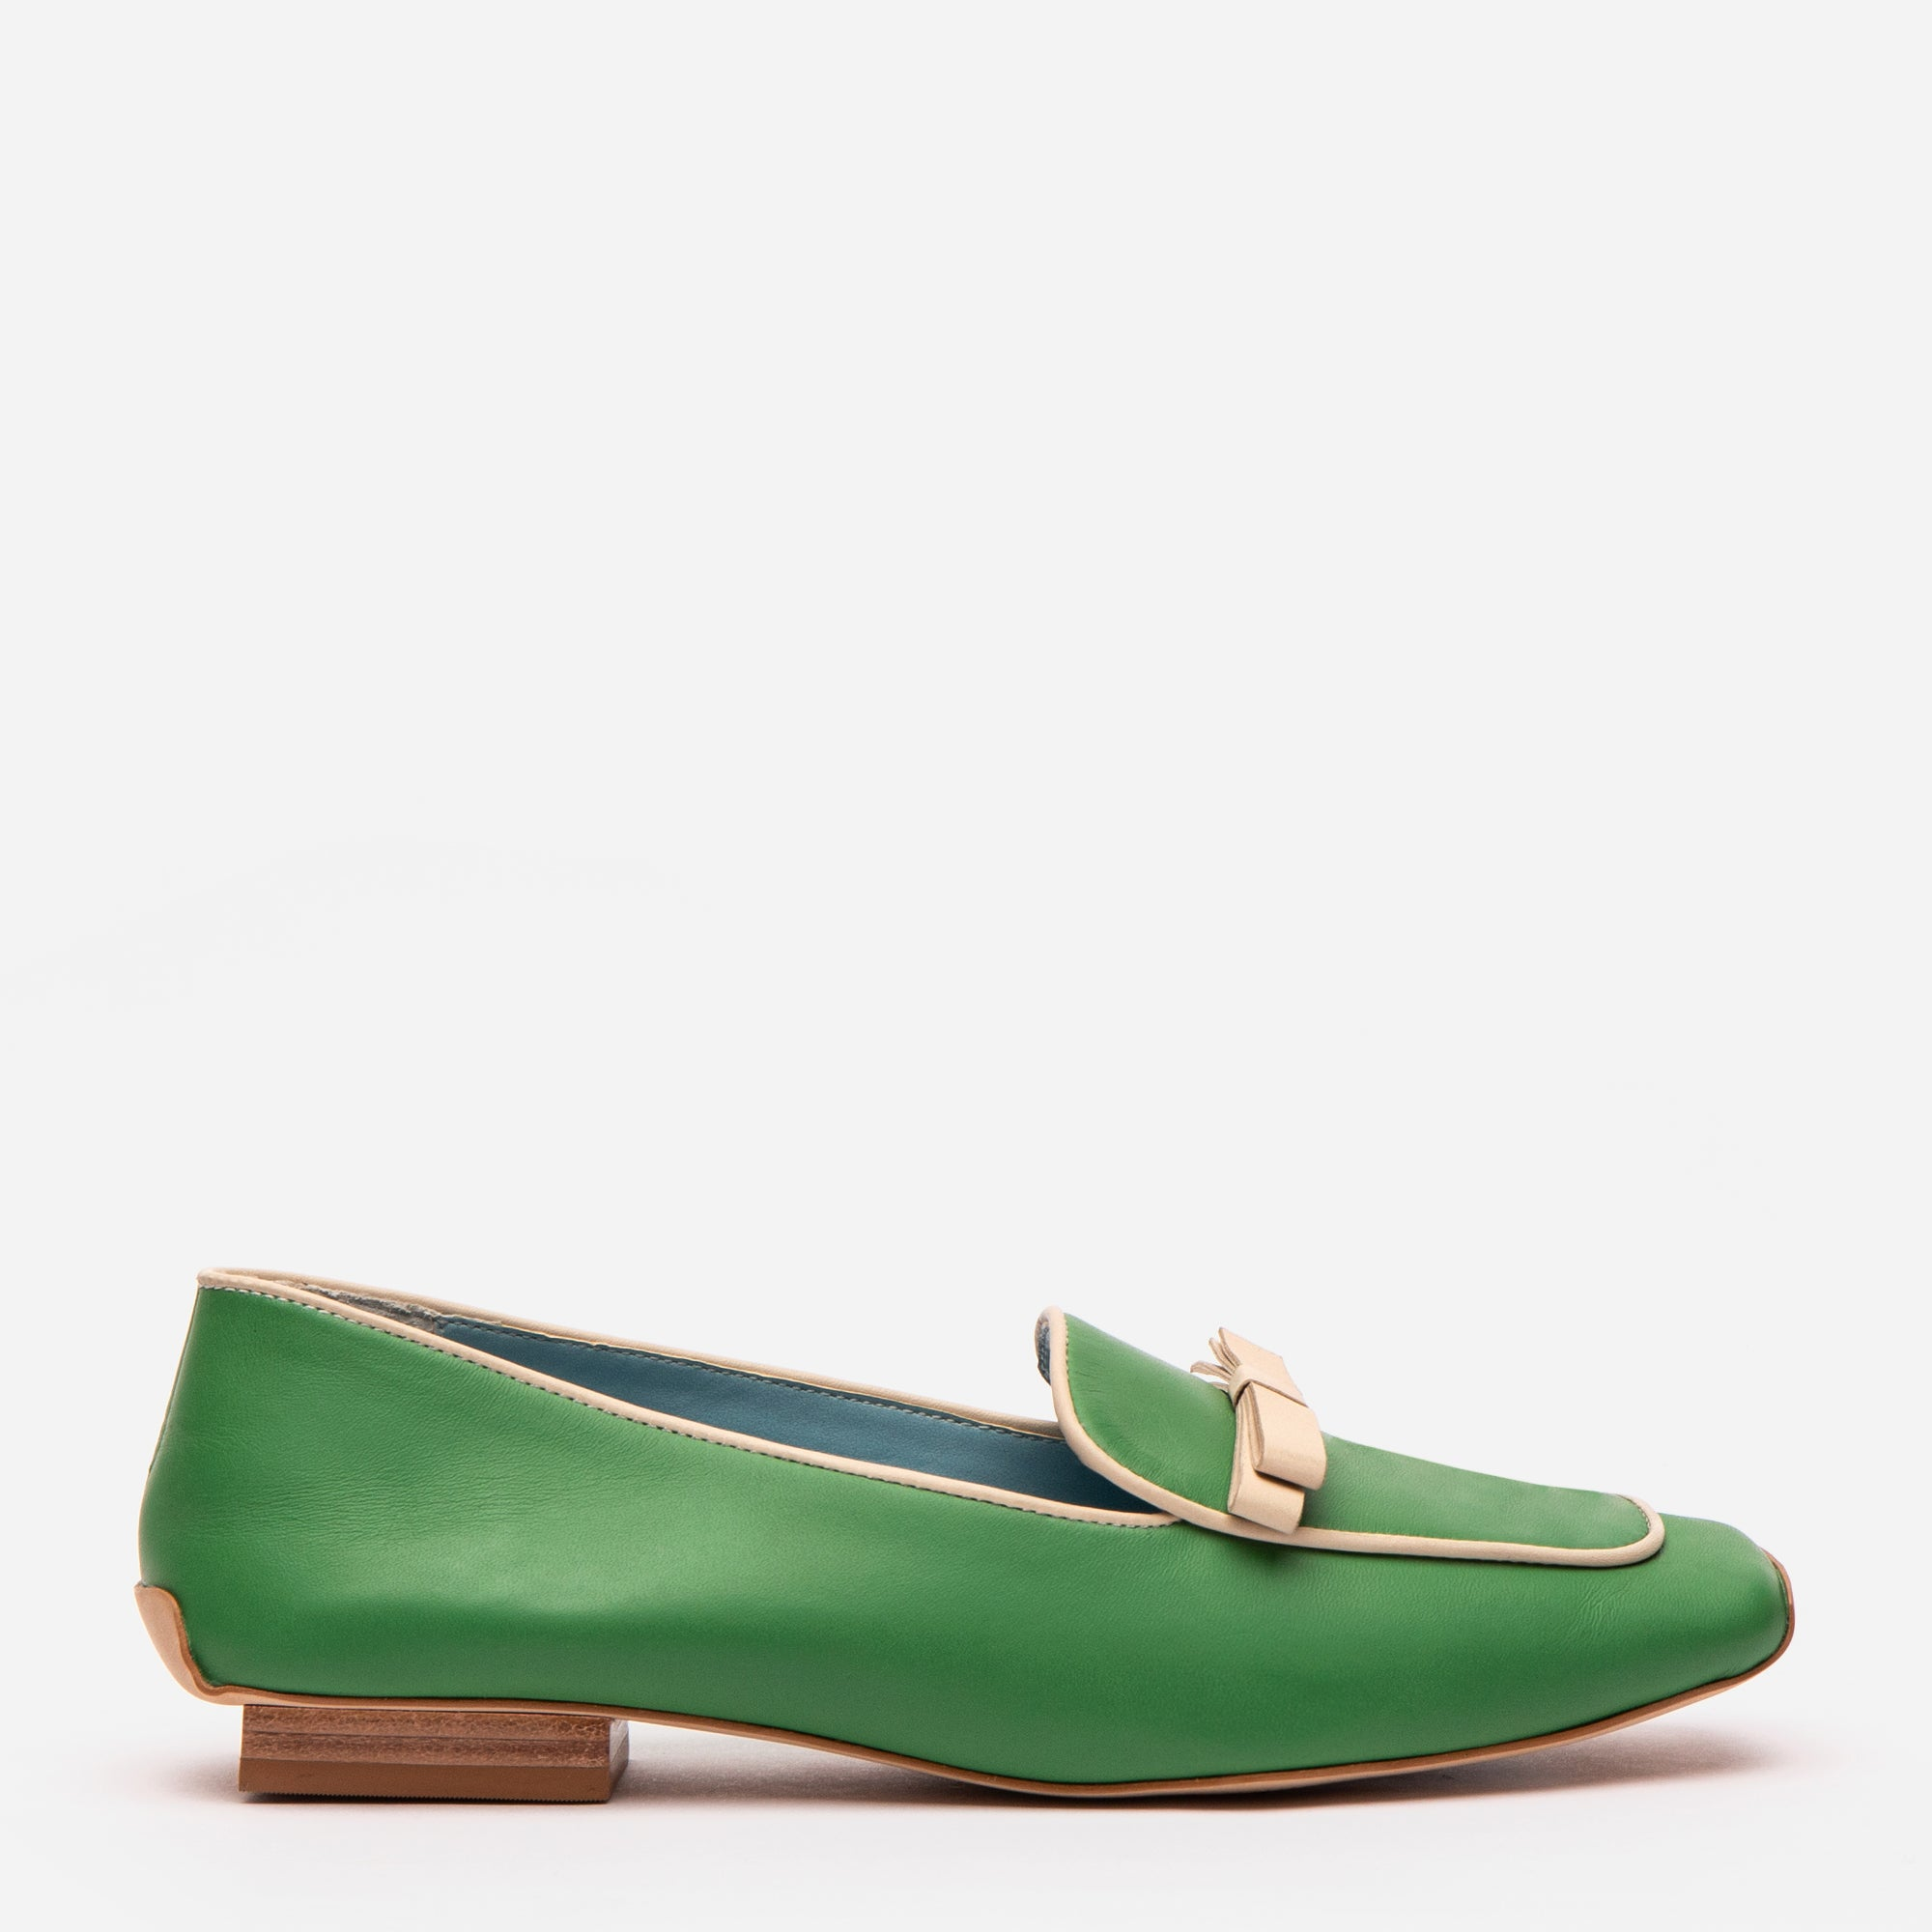 Suzanne Loafer Leather Green Oyster - Frances Valentine